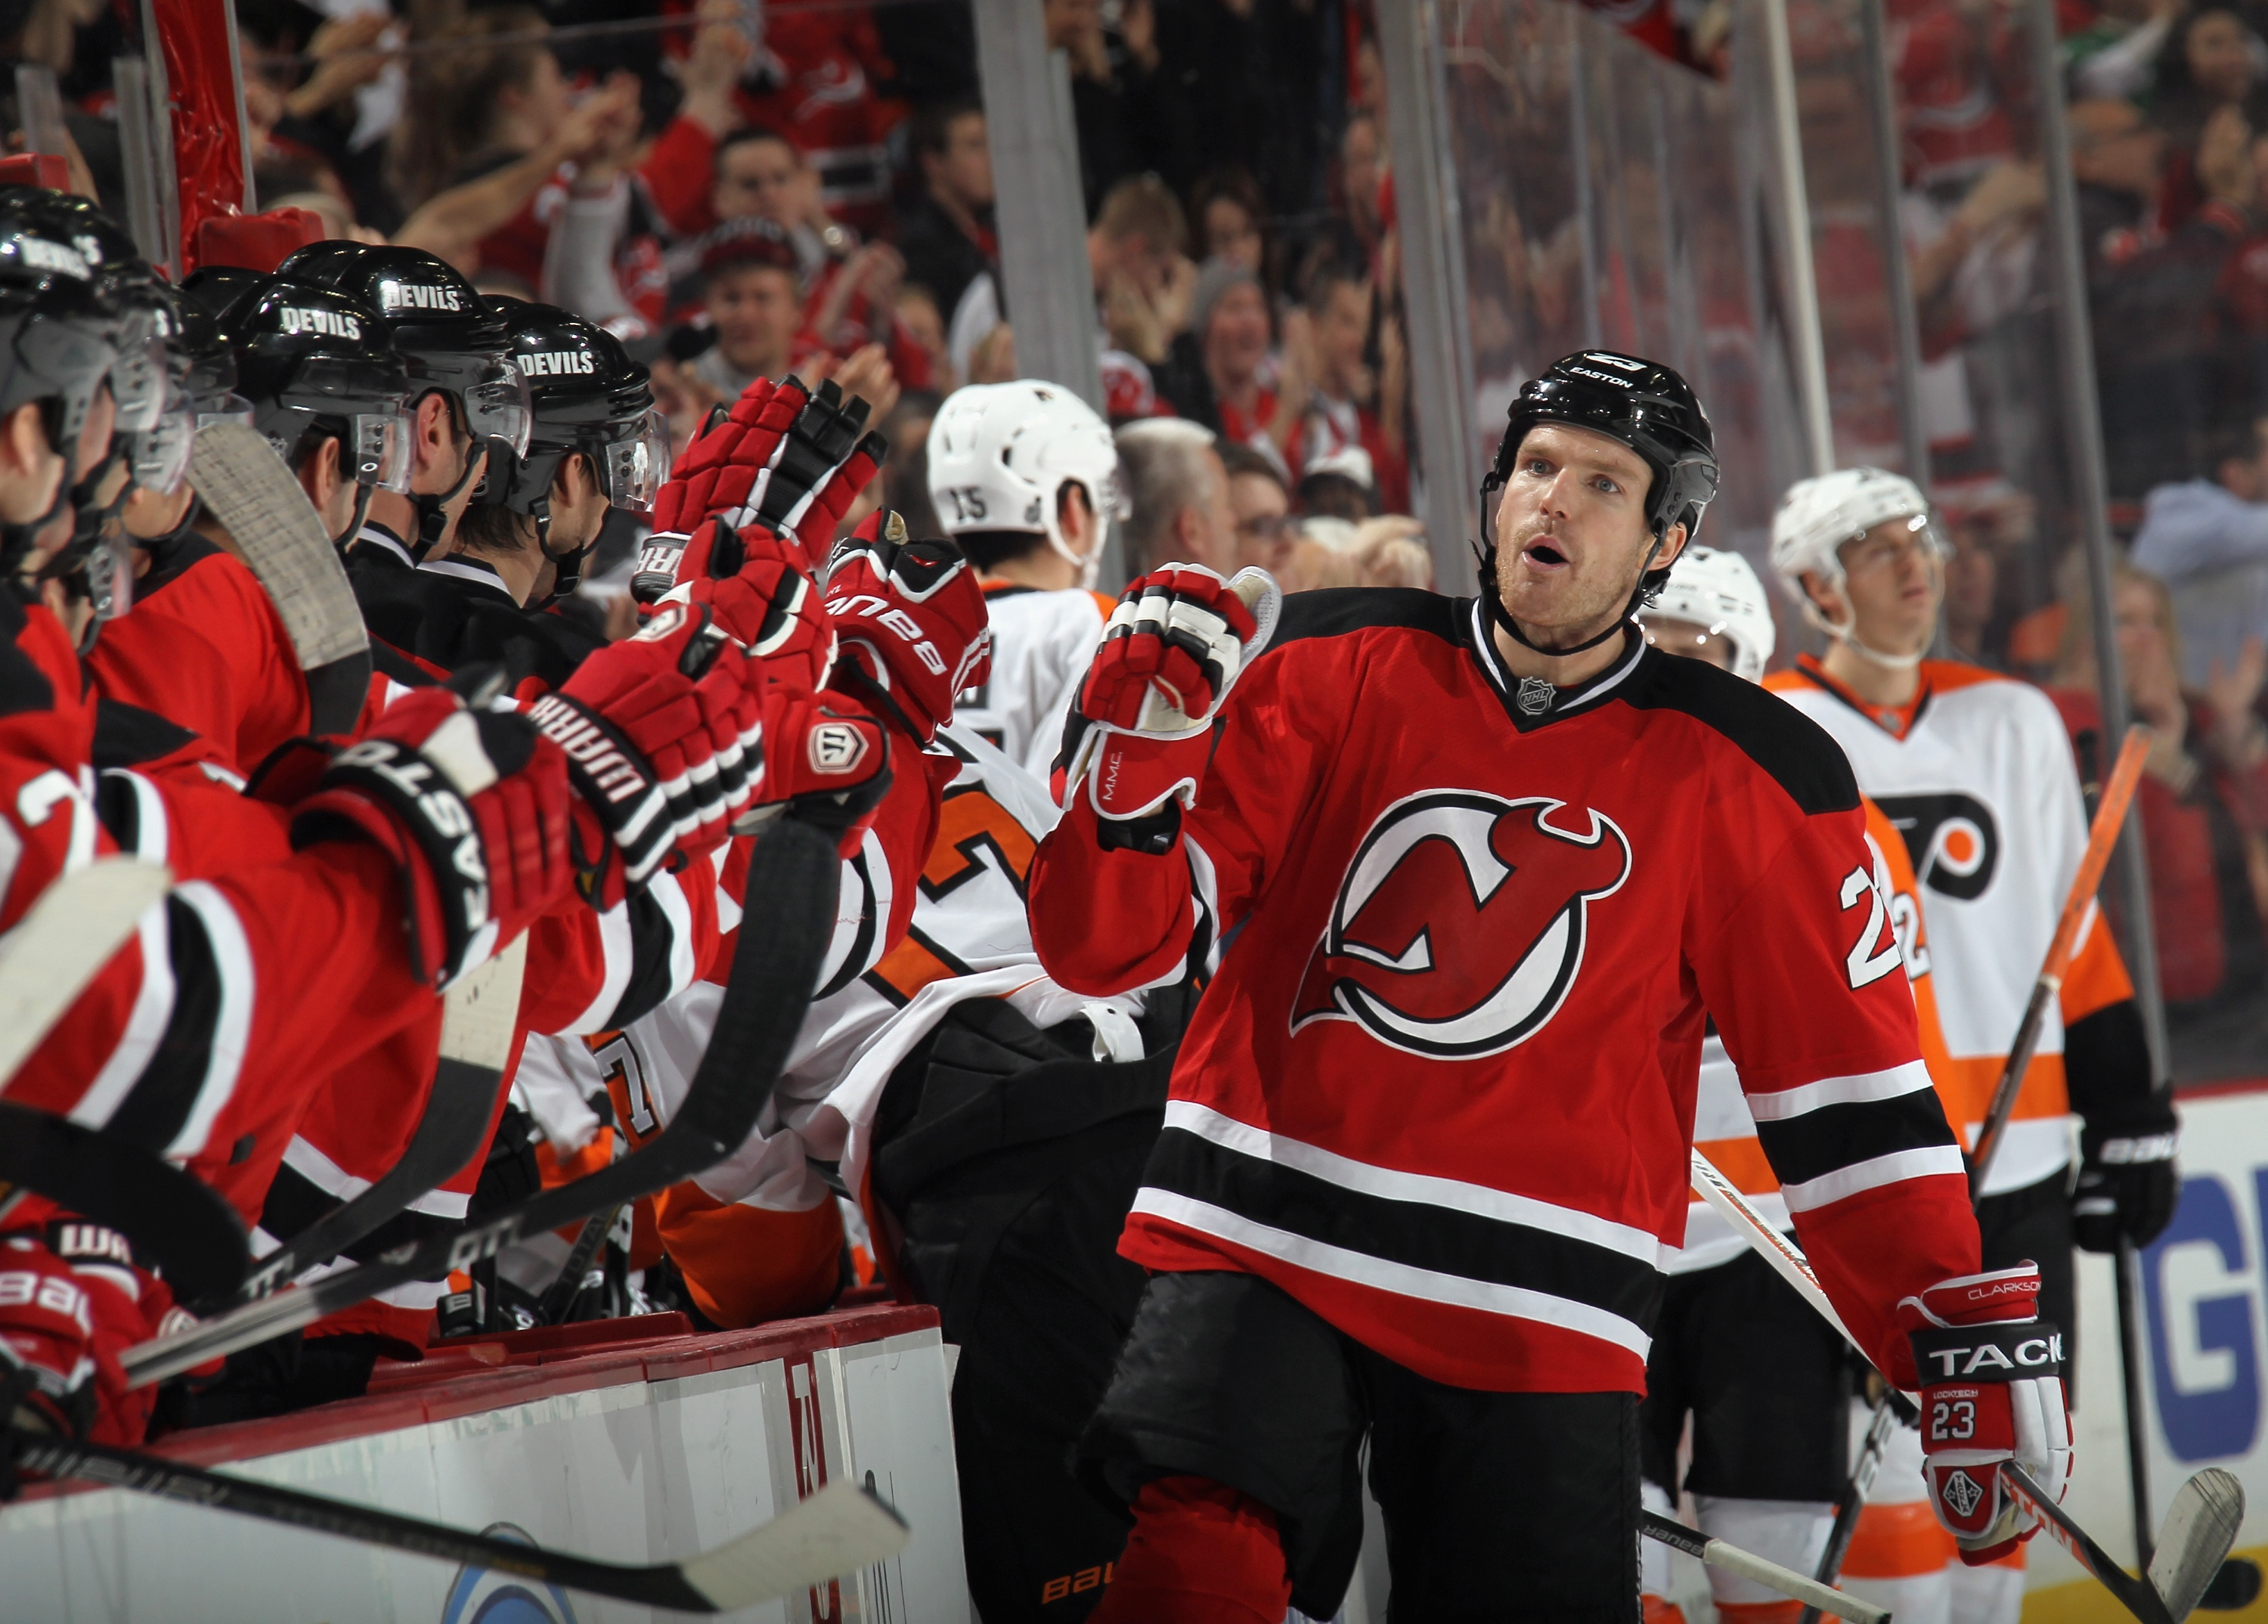 David Clarkson was making the most of his chance to play on one of the Devils' scoring lines. (Getty)